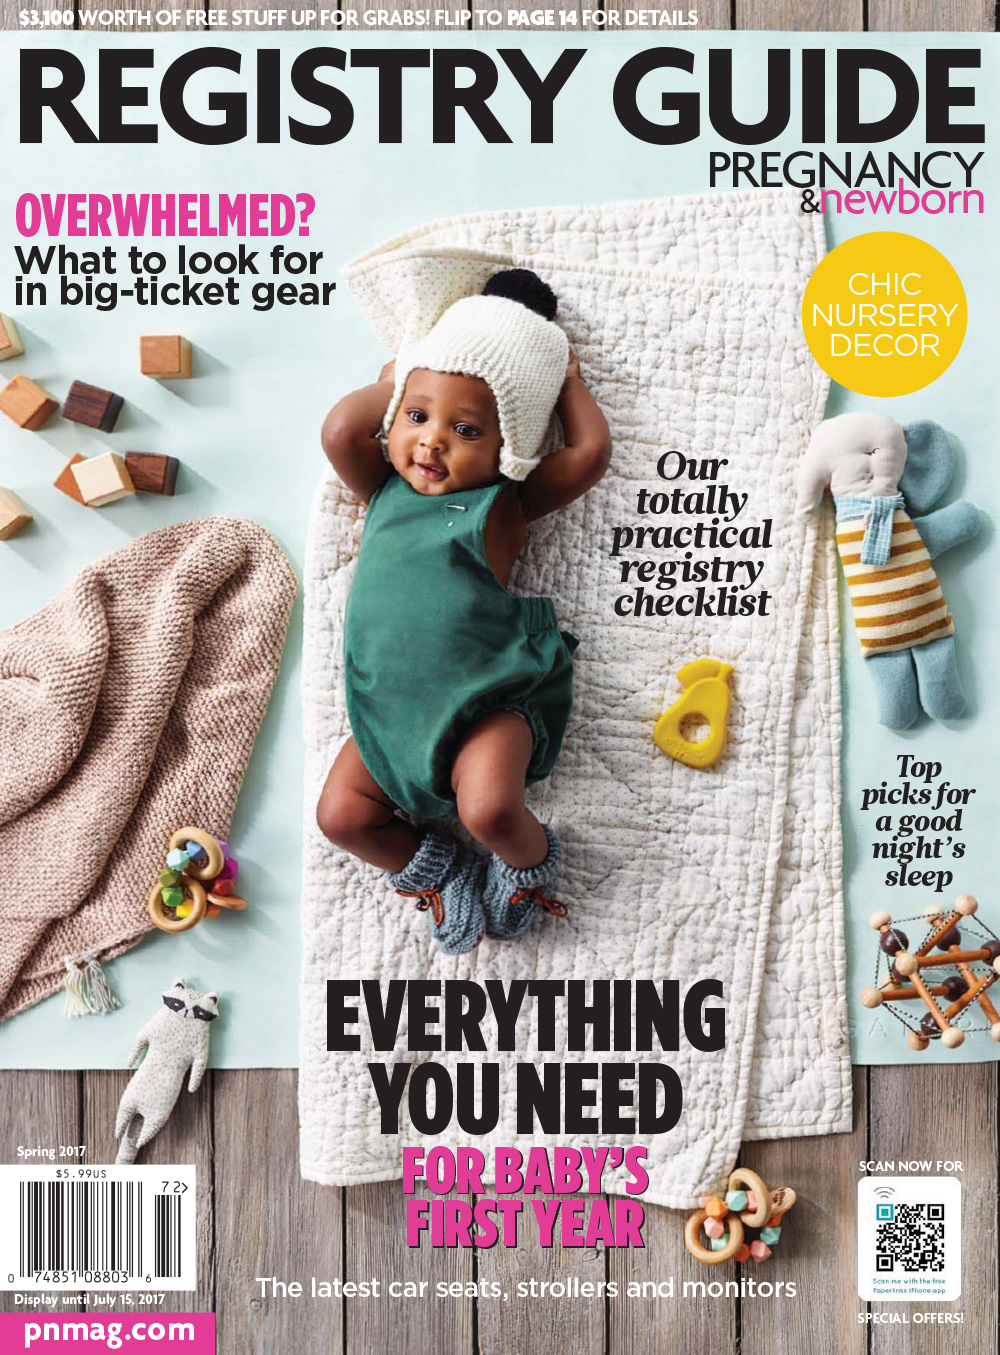 cover of spring 2017 baby and newborn registry guide